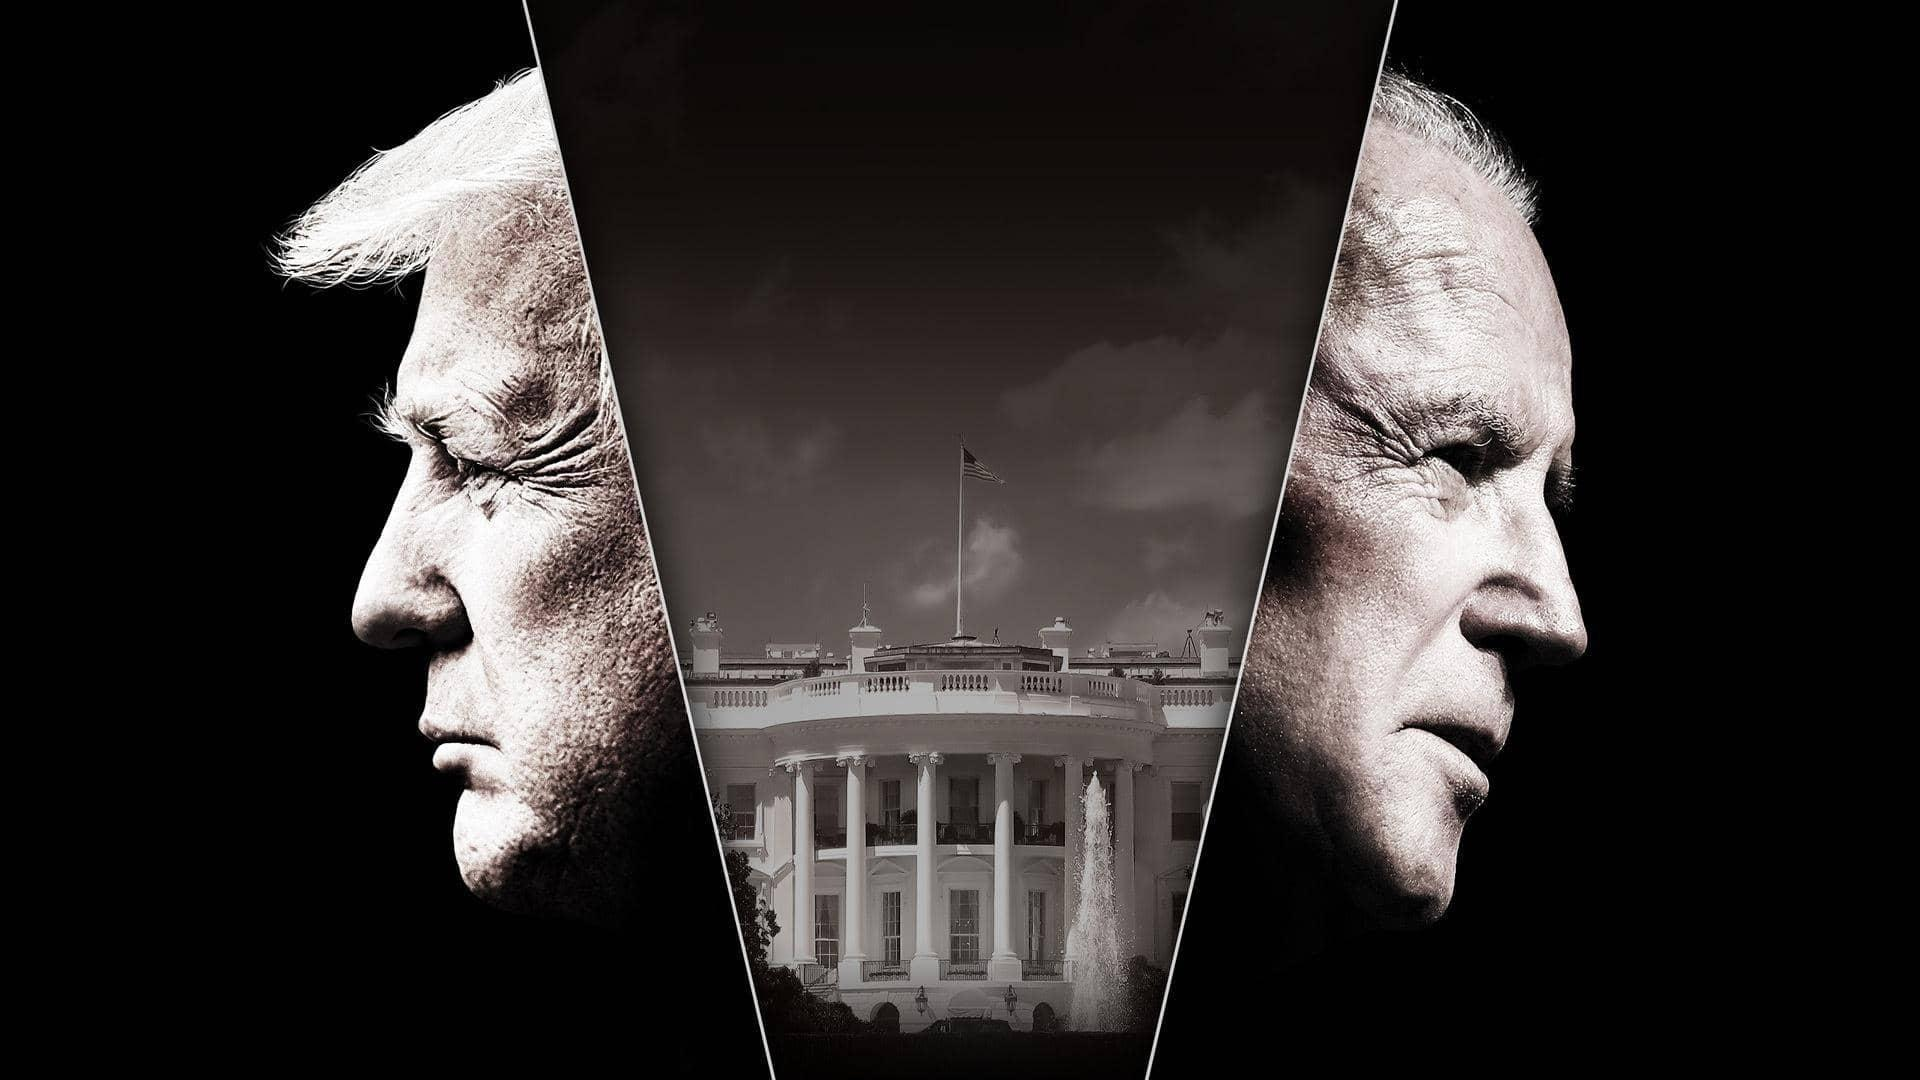 A black and white image of Donald Trump and Joe Biden with an inset of the White House